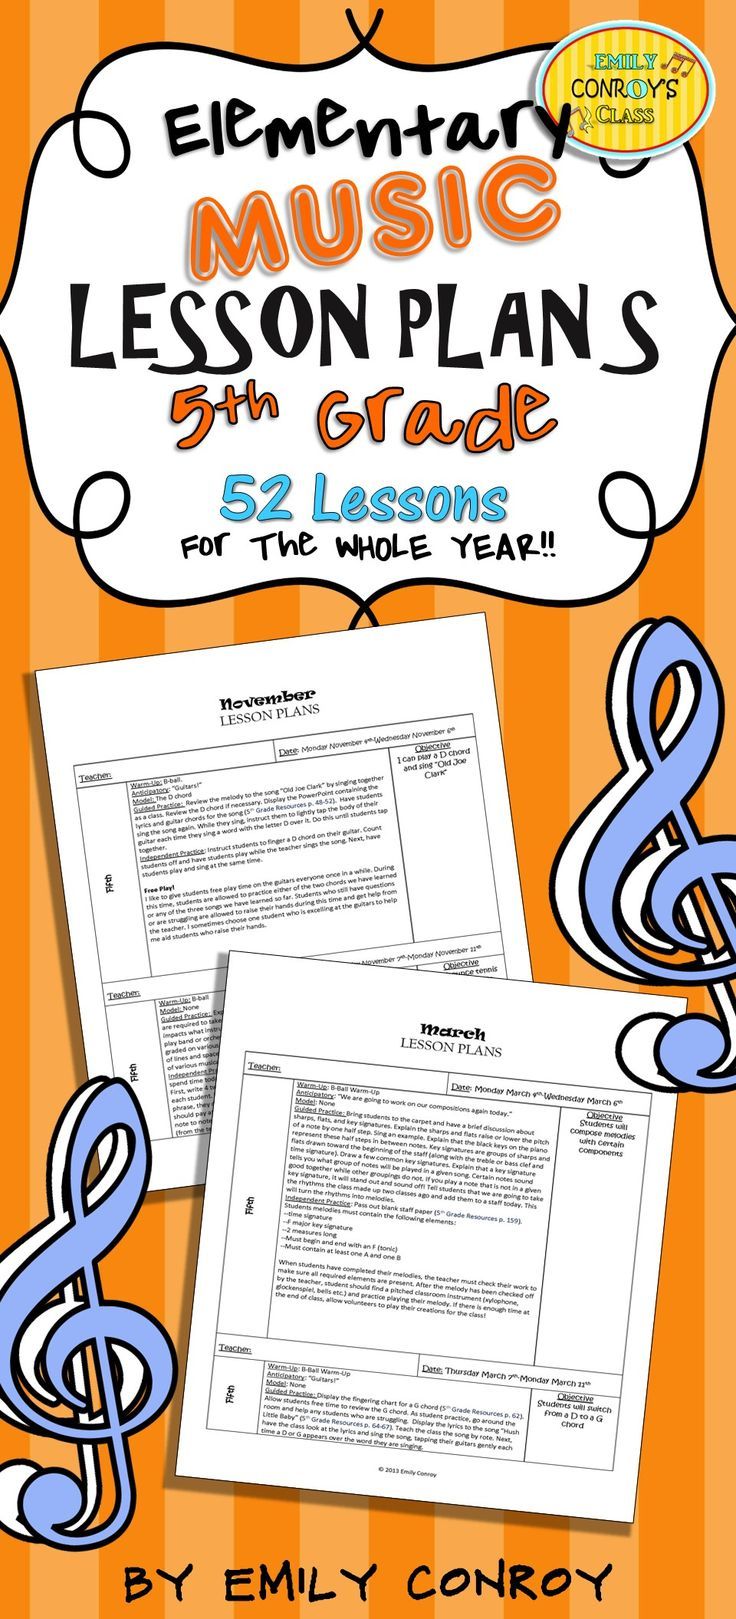 Best 25+ Elementary music lessons ideas on Pinterest | Music games ...